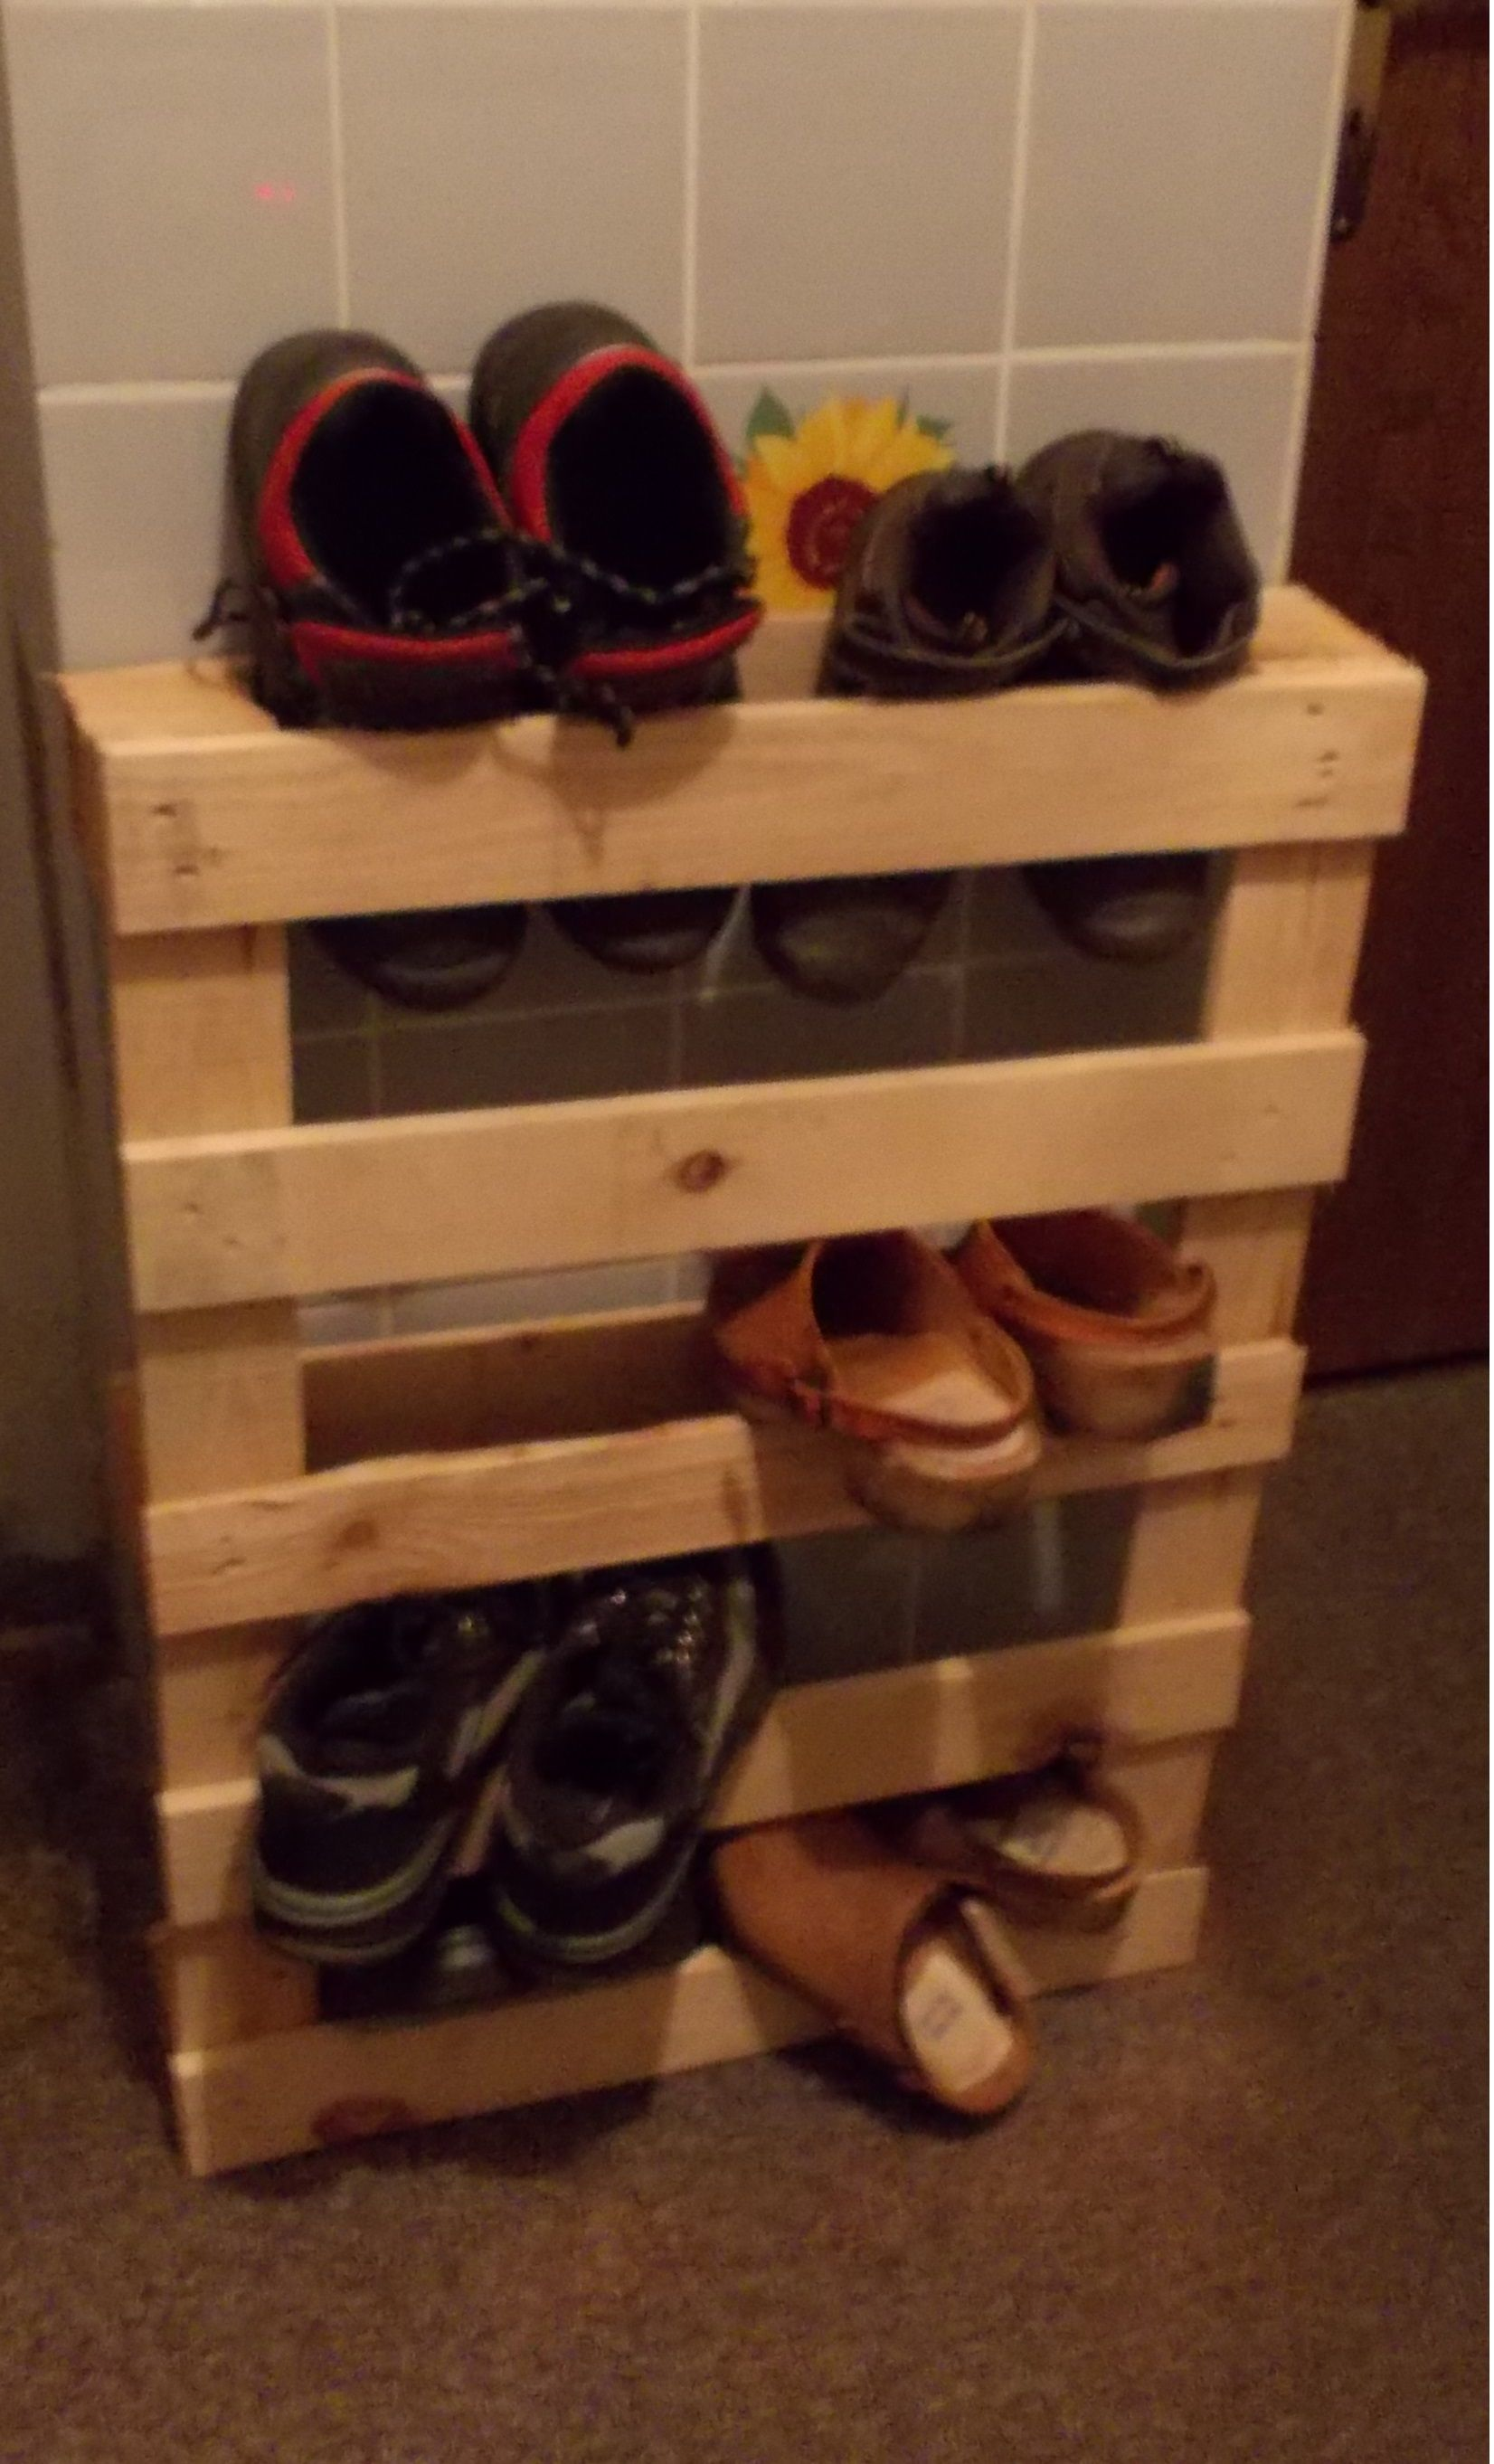 schuhregal aus einer palette my diy palettenprojecte pinterest schuhregal und bastelideen. Black Bedroom Furniture Sets. Home Design Ideas